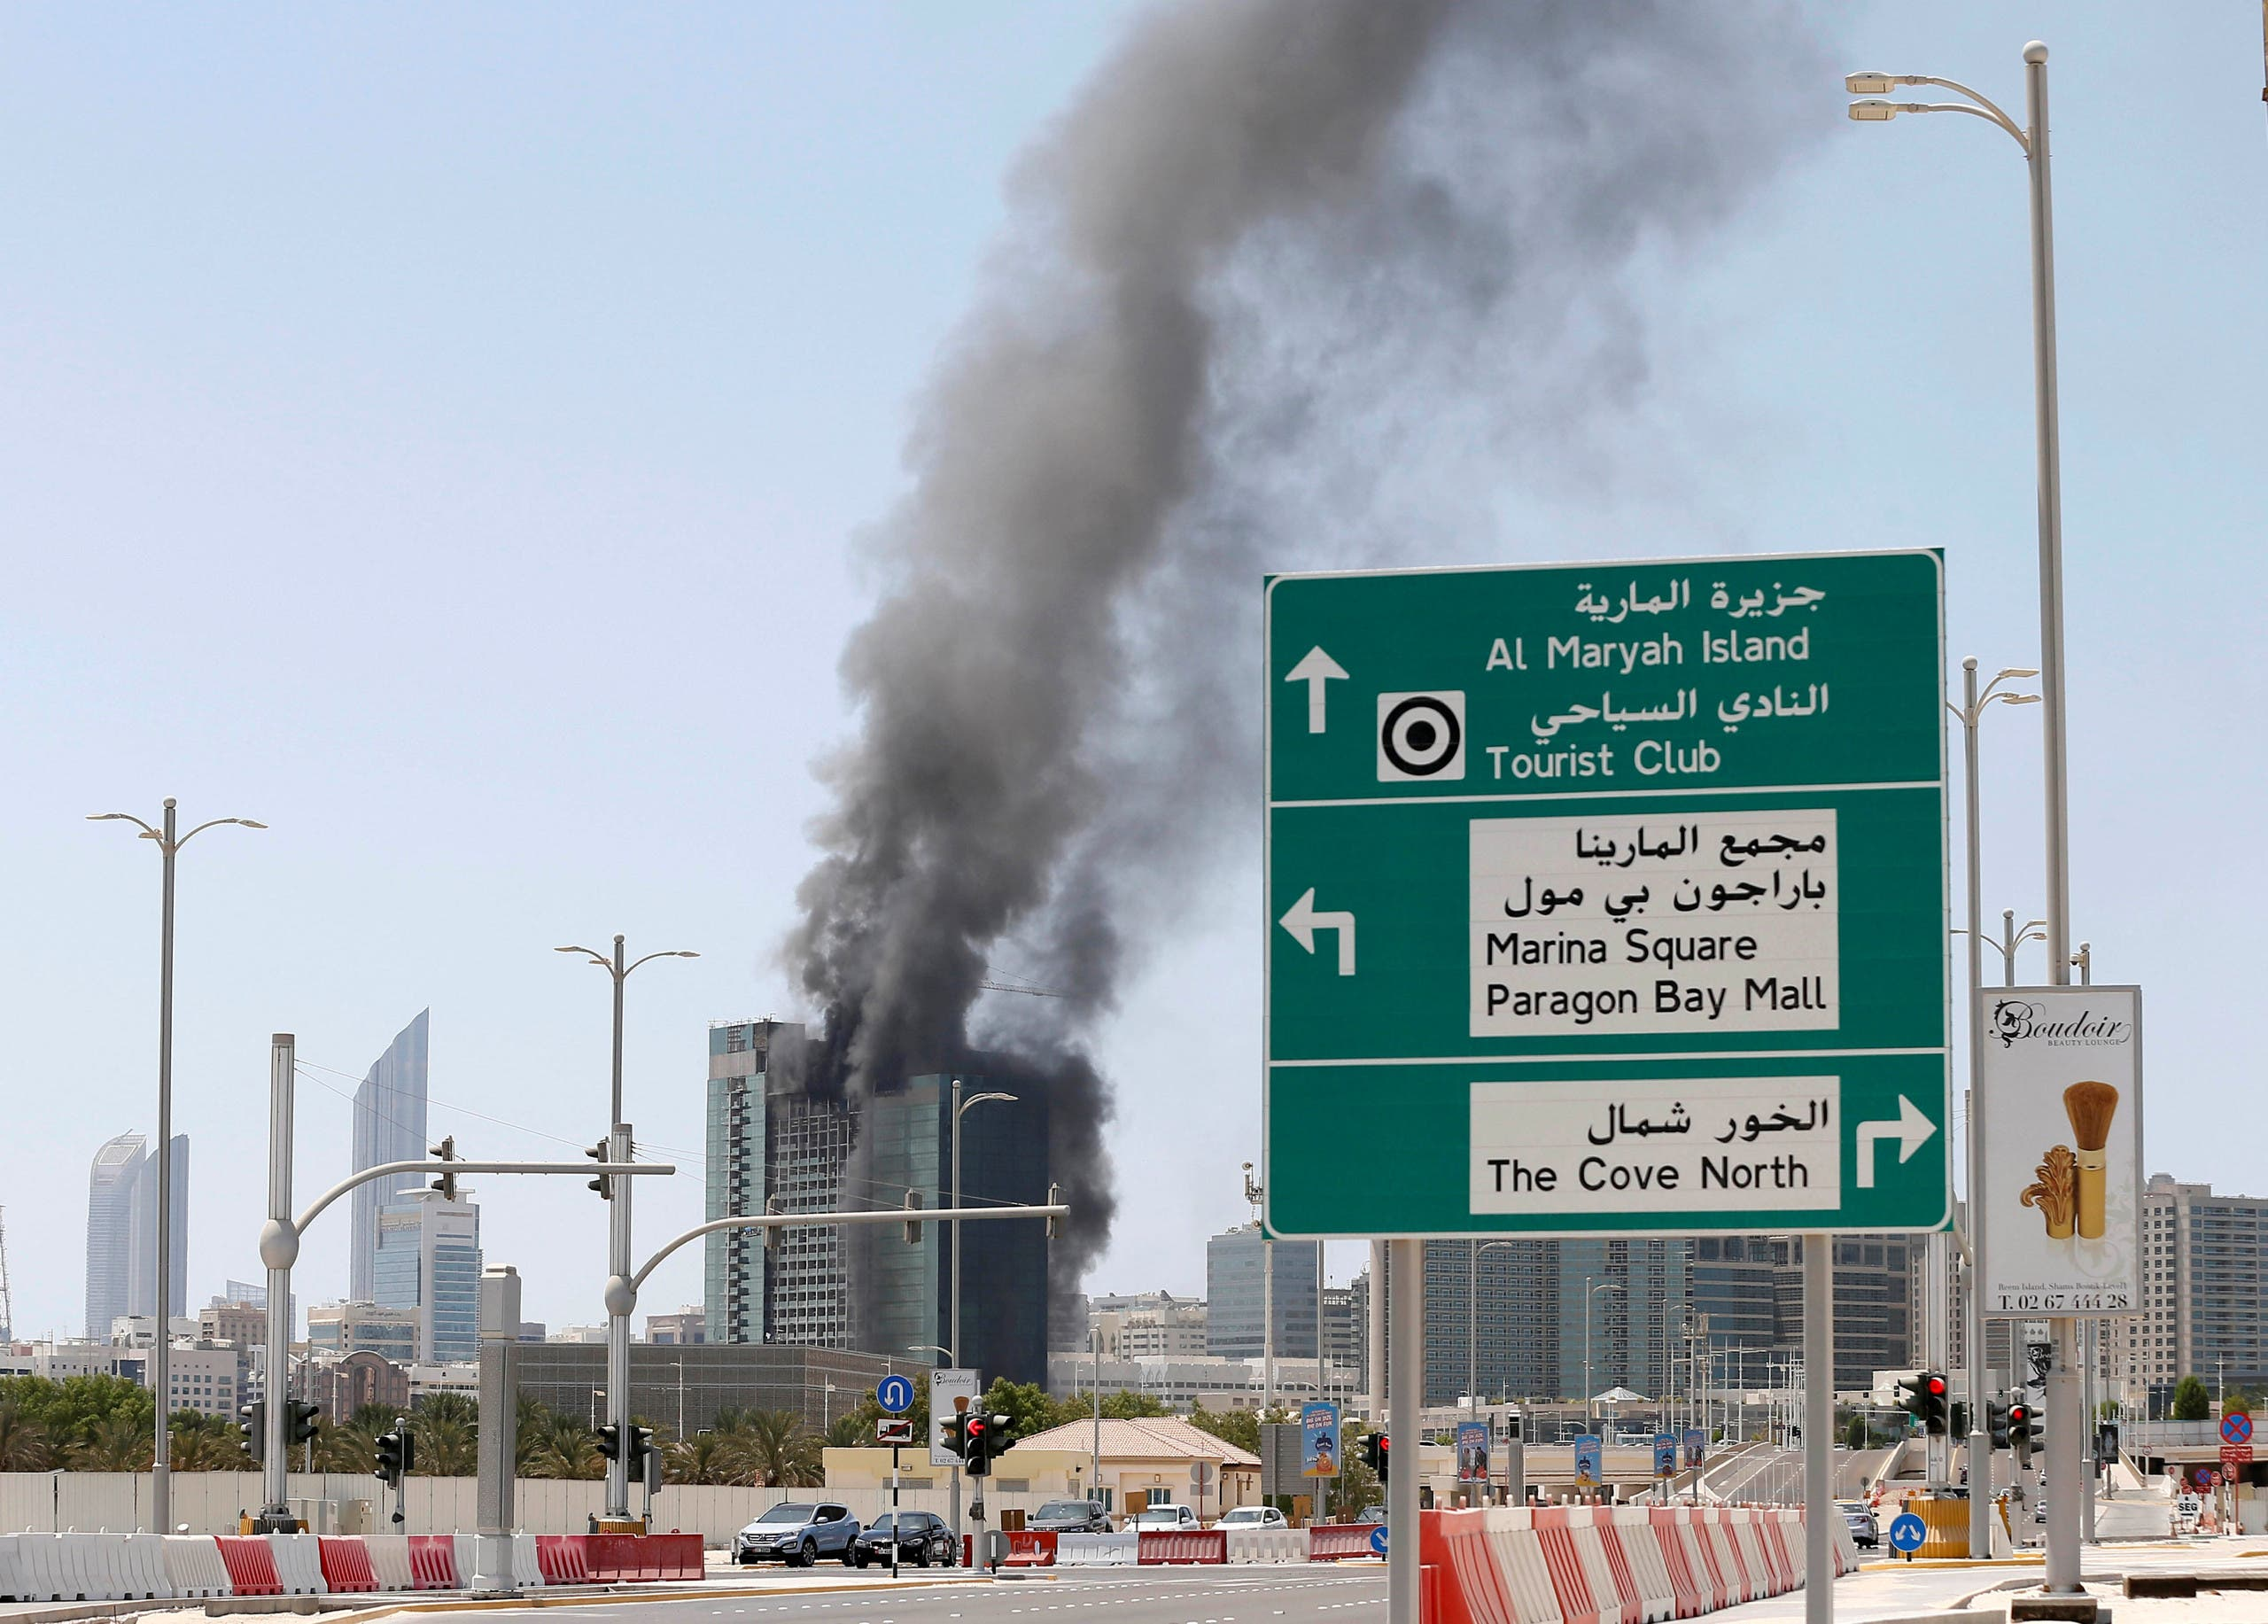 Smoke rises after a fire broke out in a building at Al Maryah Island in Abu Dhabi, UAE, August 30, 2016. (Photo: Reuters)